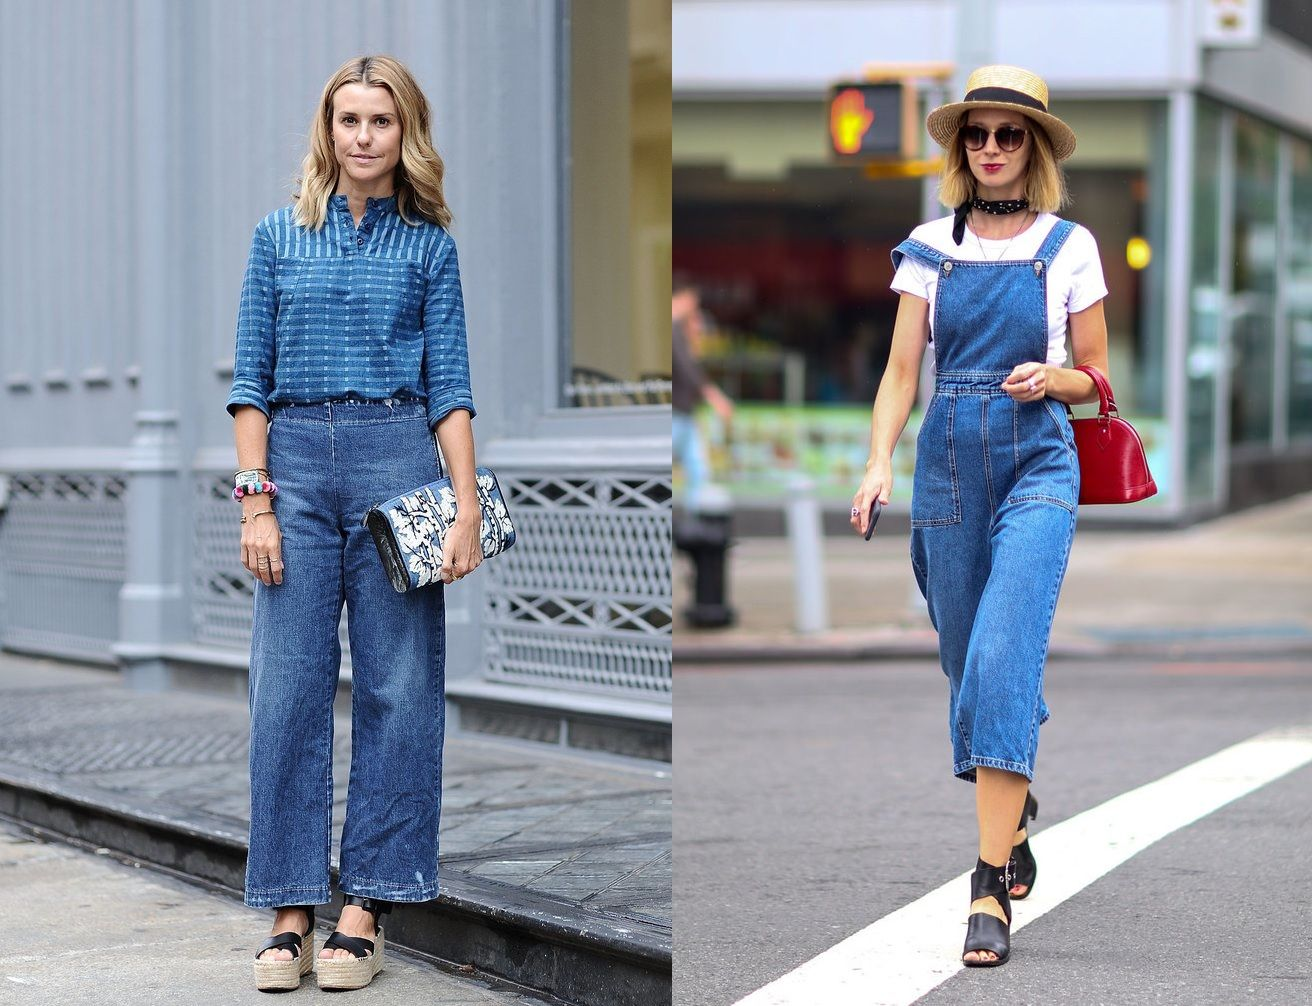 Nyfw Spring 2016 Street Style Vegan Fashion New York Fashion Week Spring 2016 70s Denim